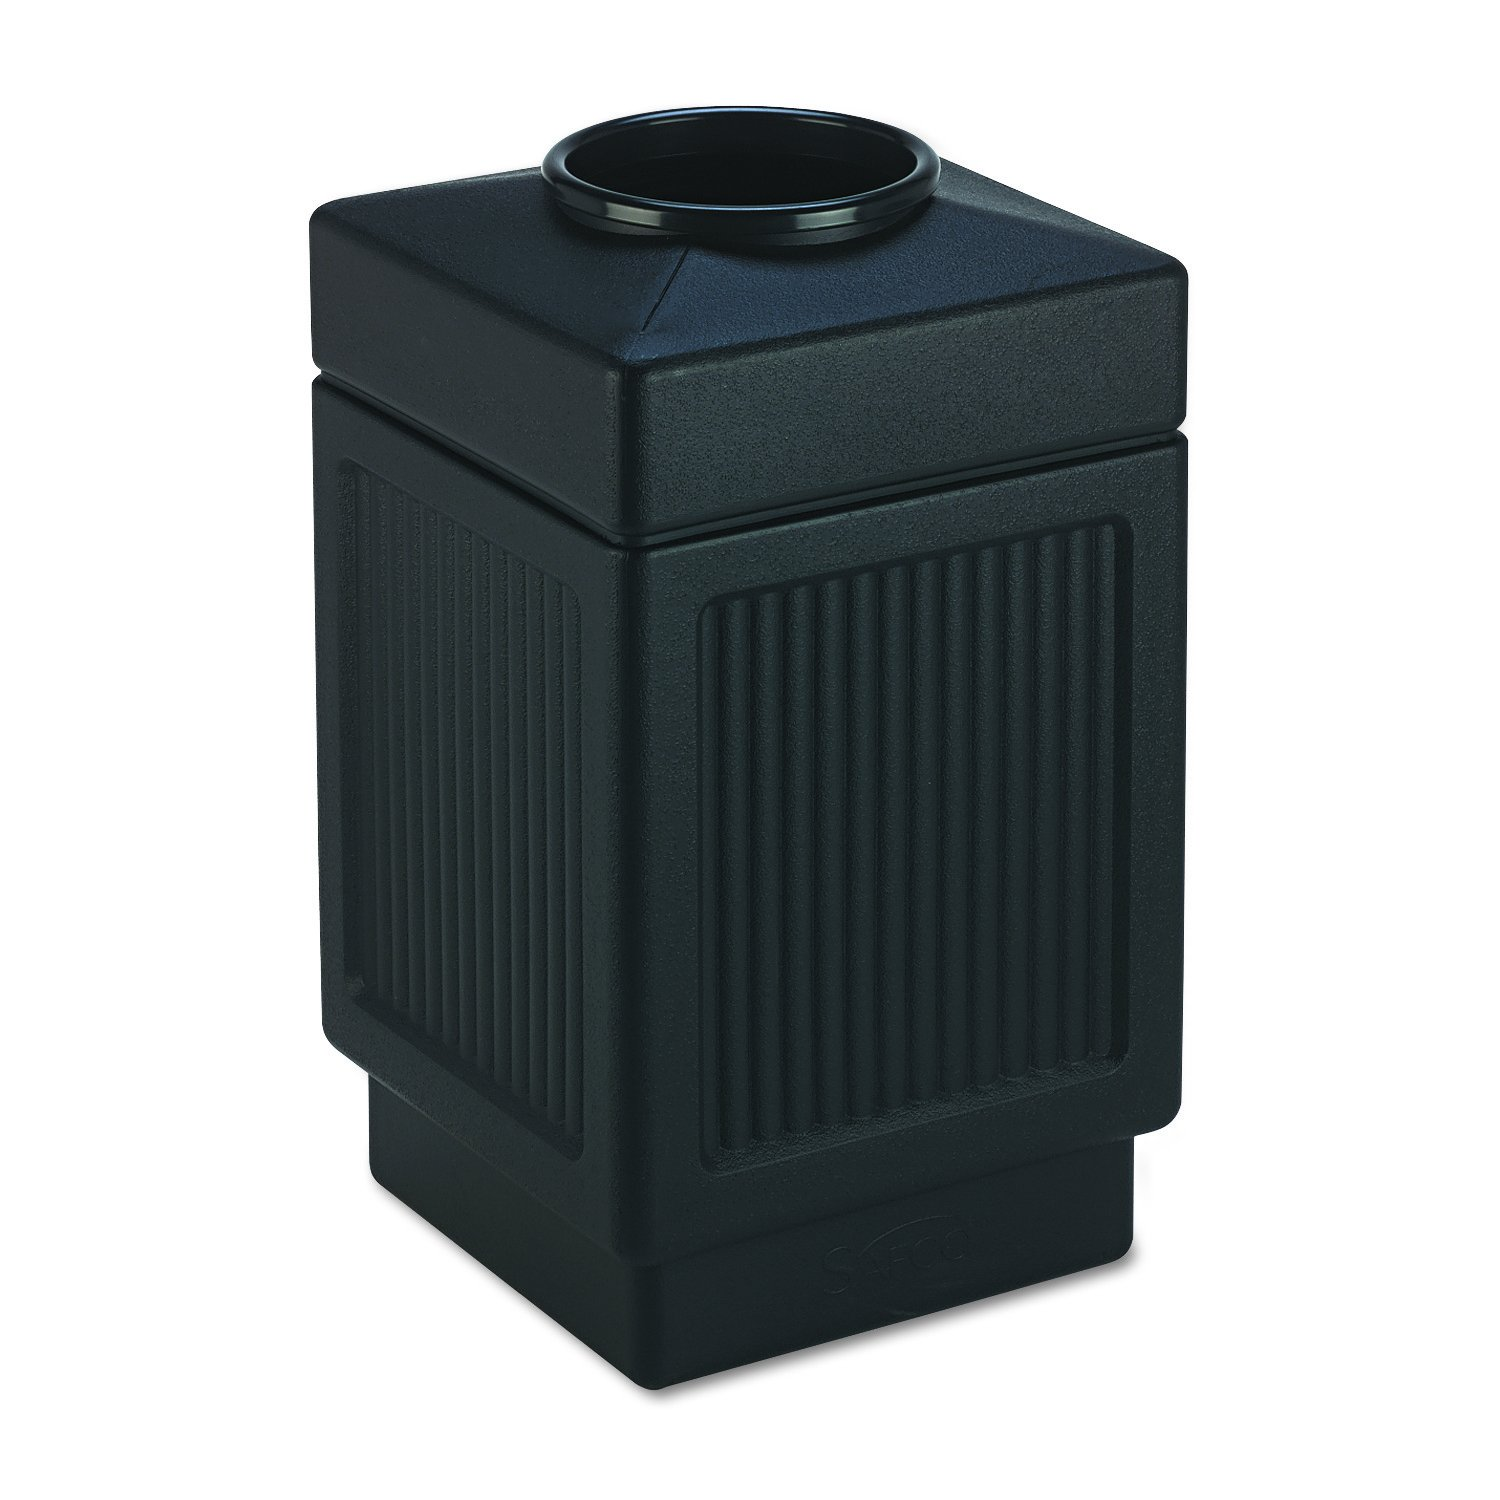 Safco 9475BL Canmeleon Top-Open Receptacle, Square, Polyethylene, 38gal, Textured Black